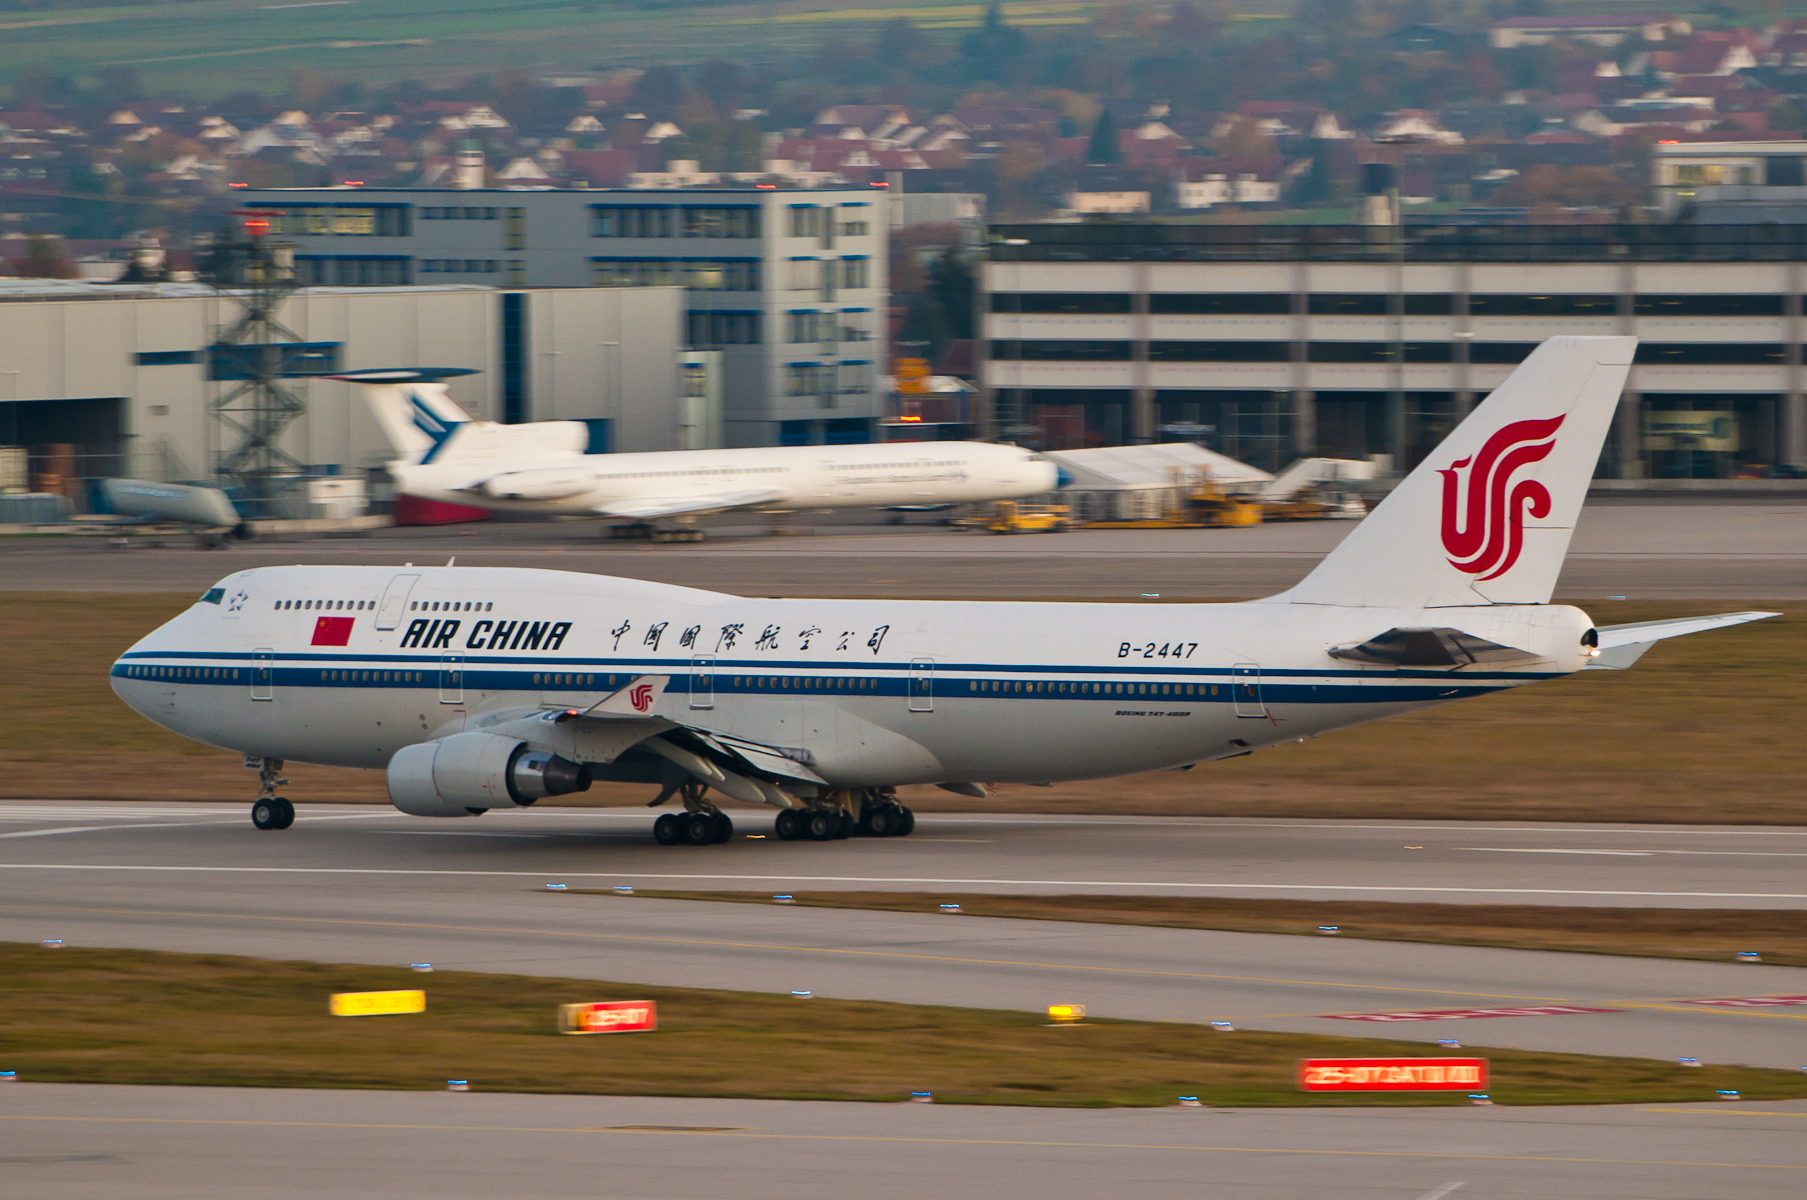 File:Air China B747-4J6 B-2447 EDDS 07.jpg